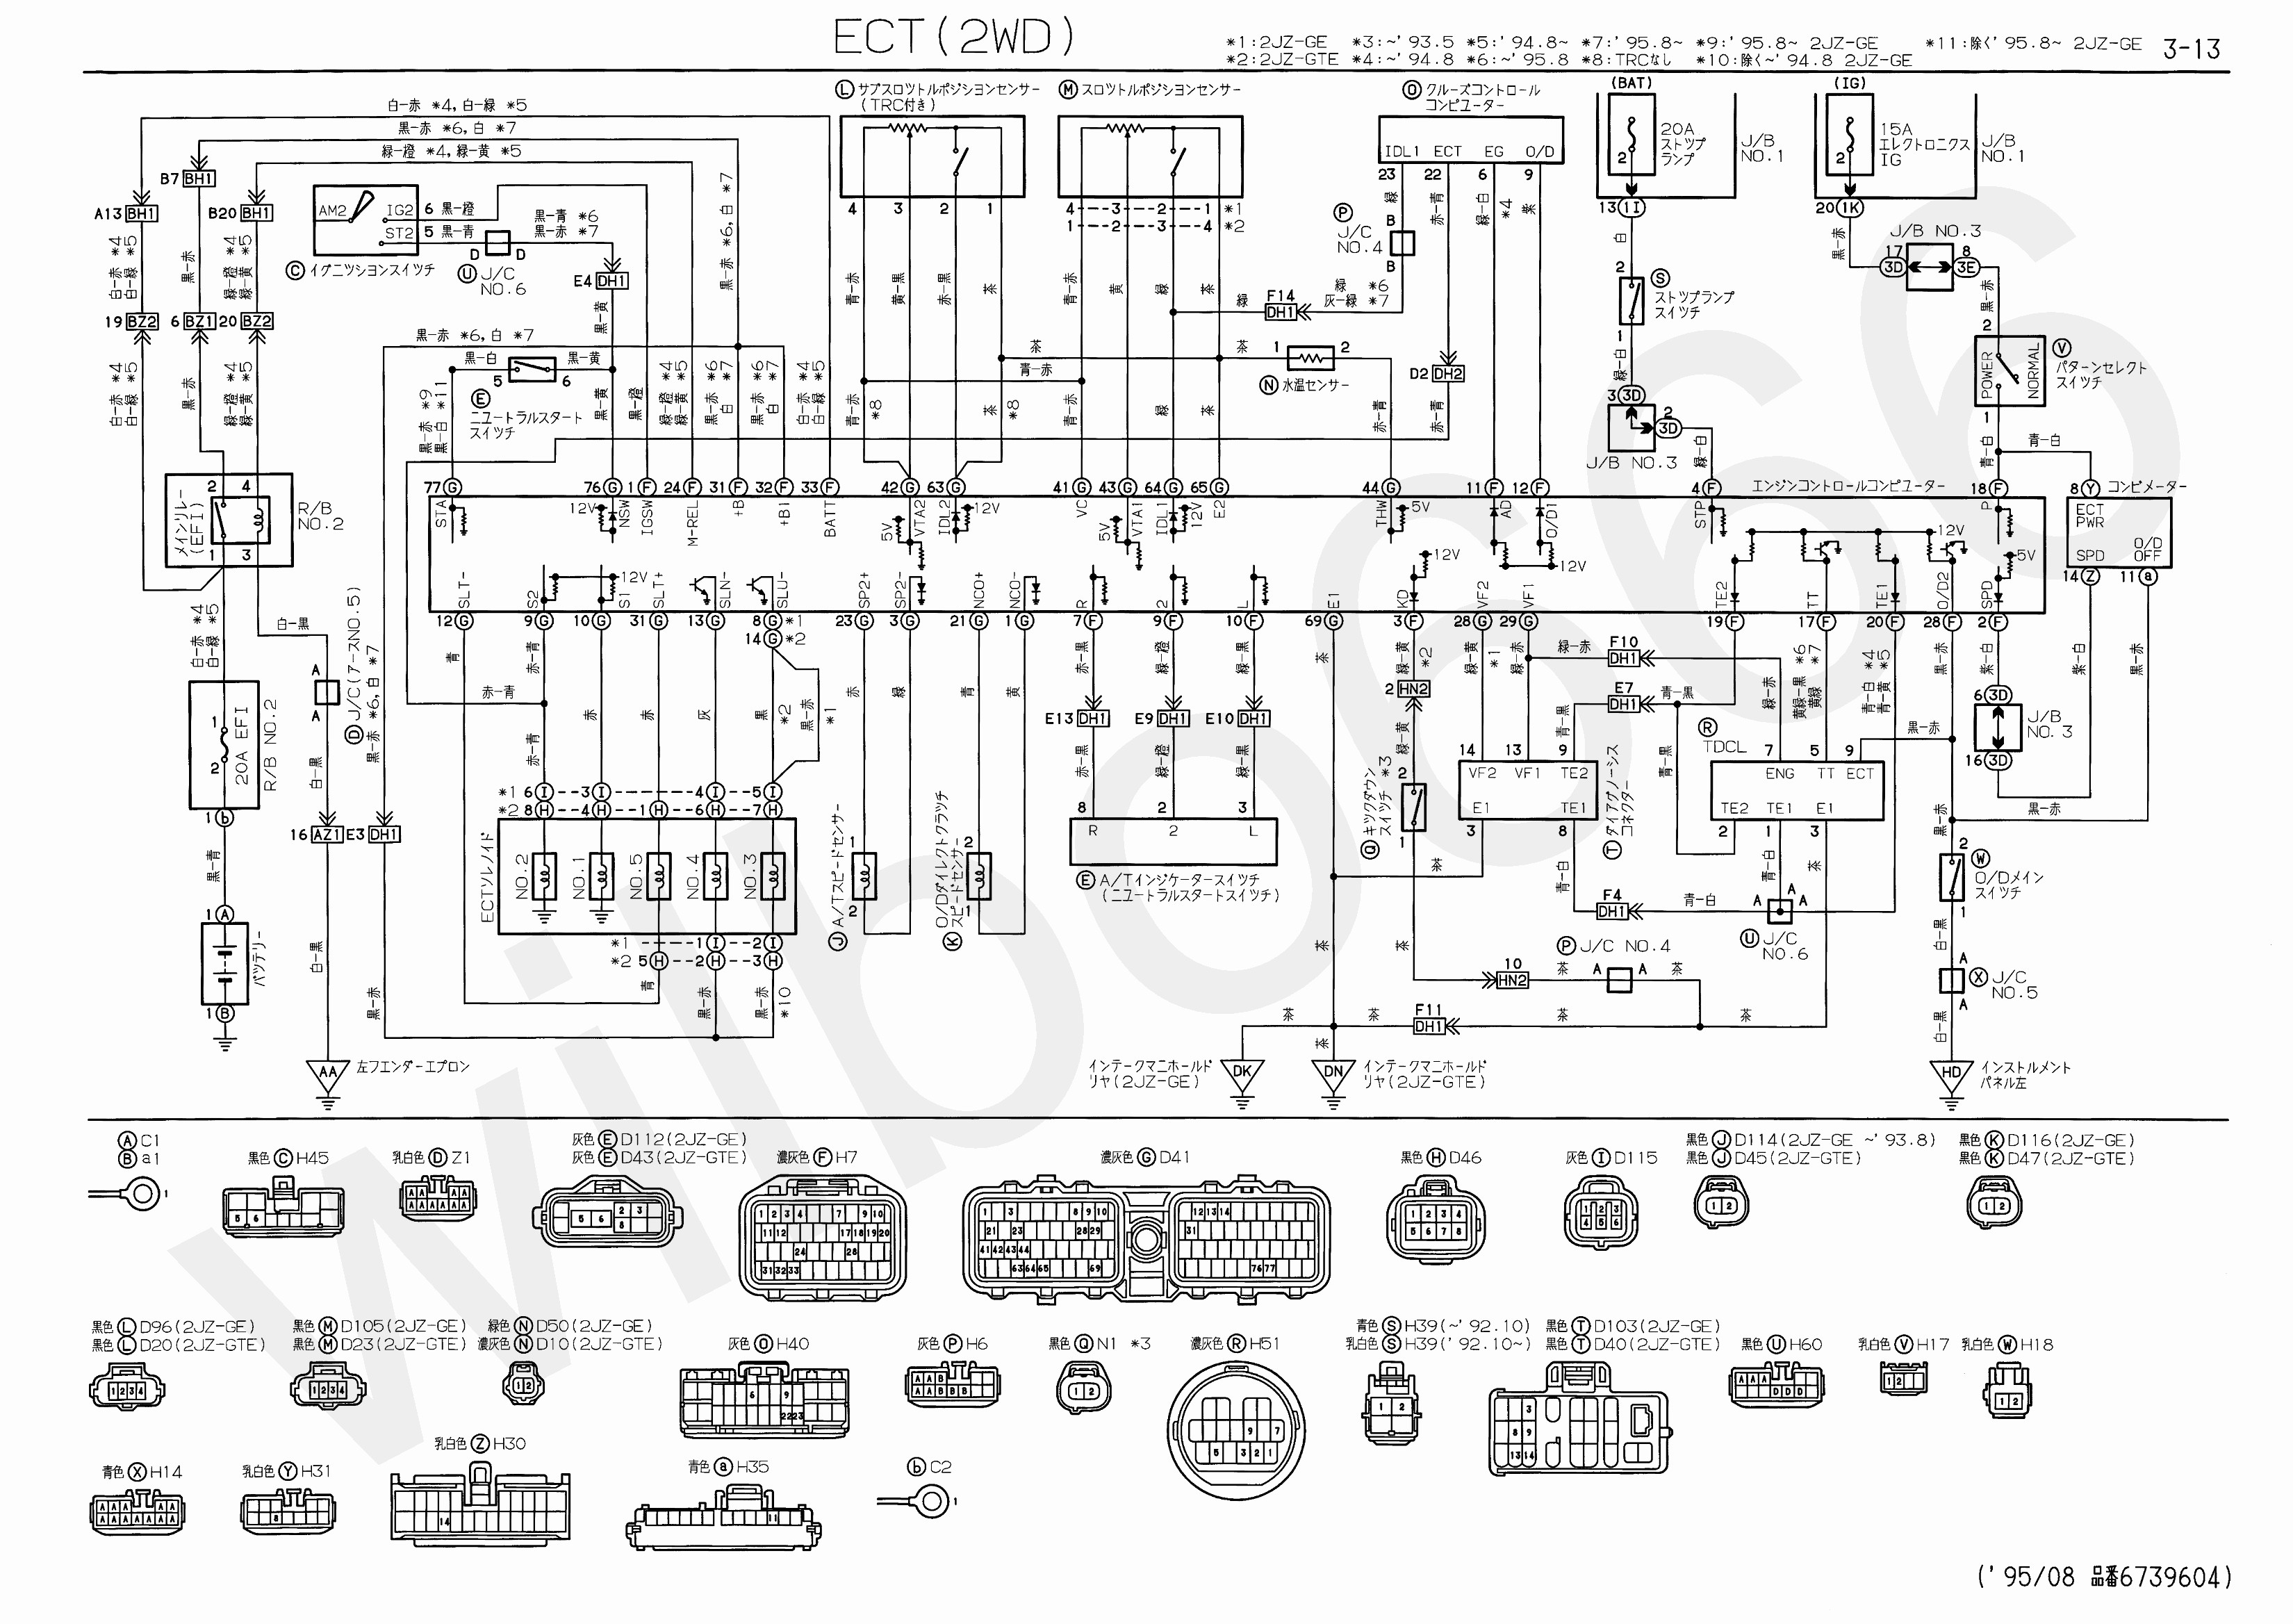 94 dodge shadow wiring diagram 94 ford bronco wiring diagram 94 rh banyan palace com 1994 ford bronco wiring diagram for psom 1994 ford bronco fuel pump wiring diagram